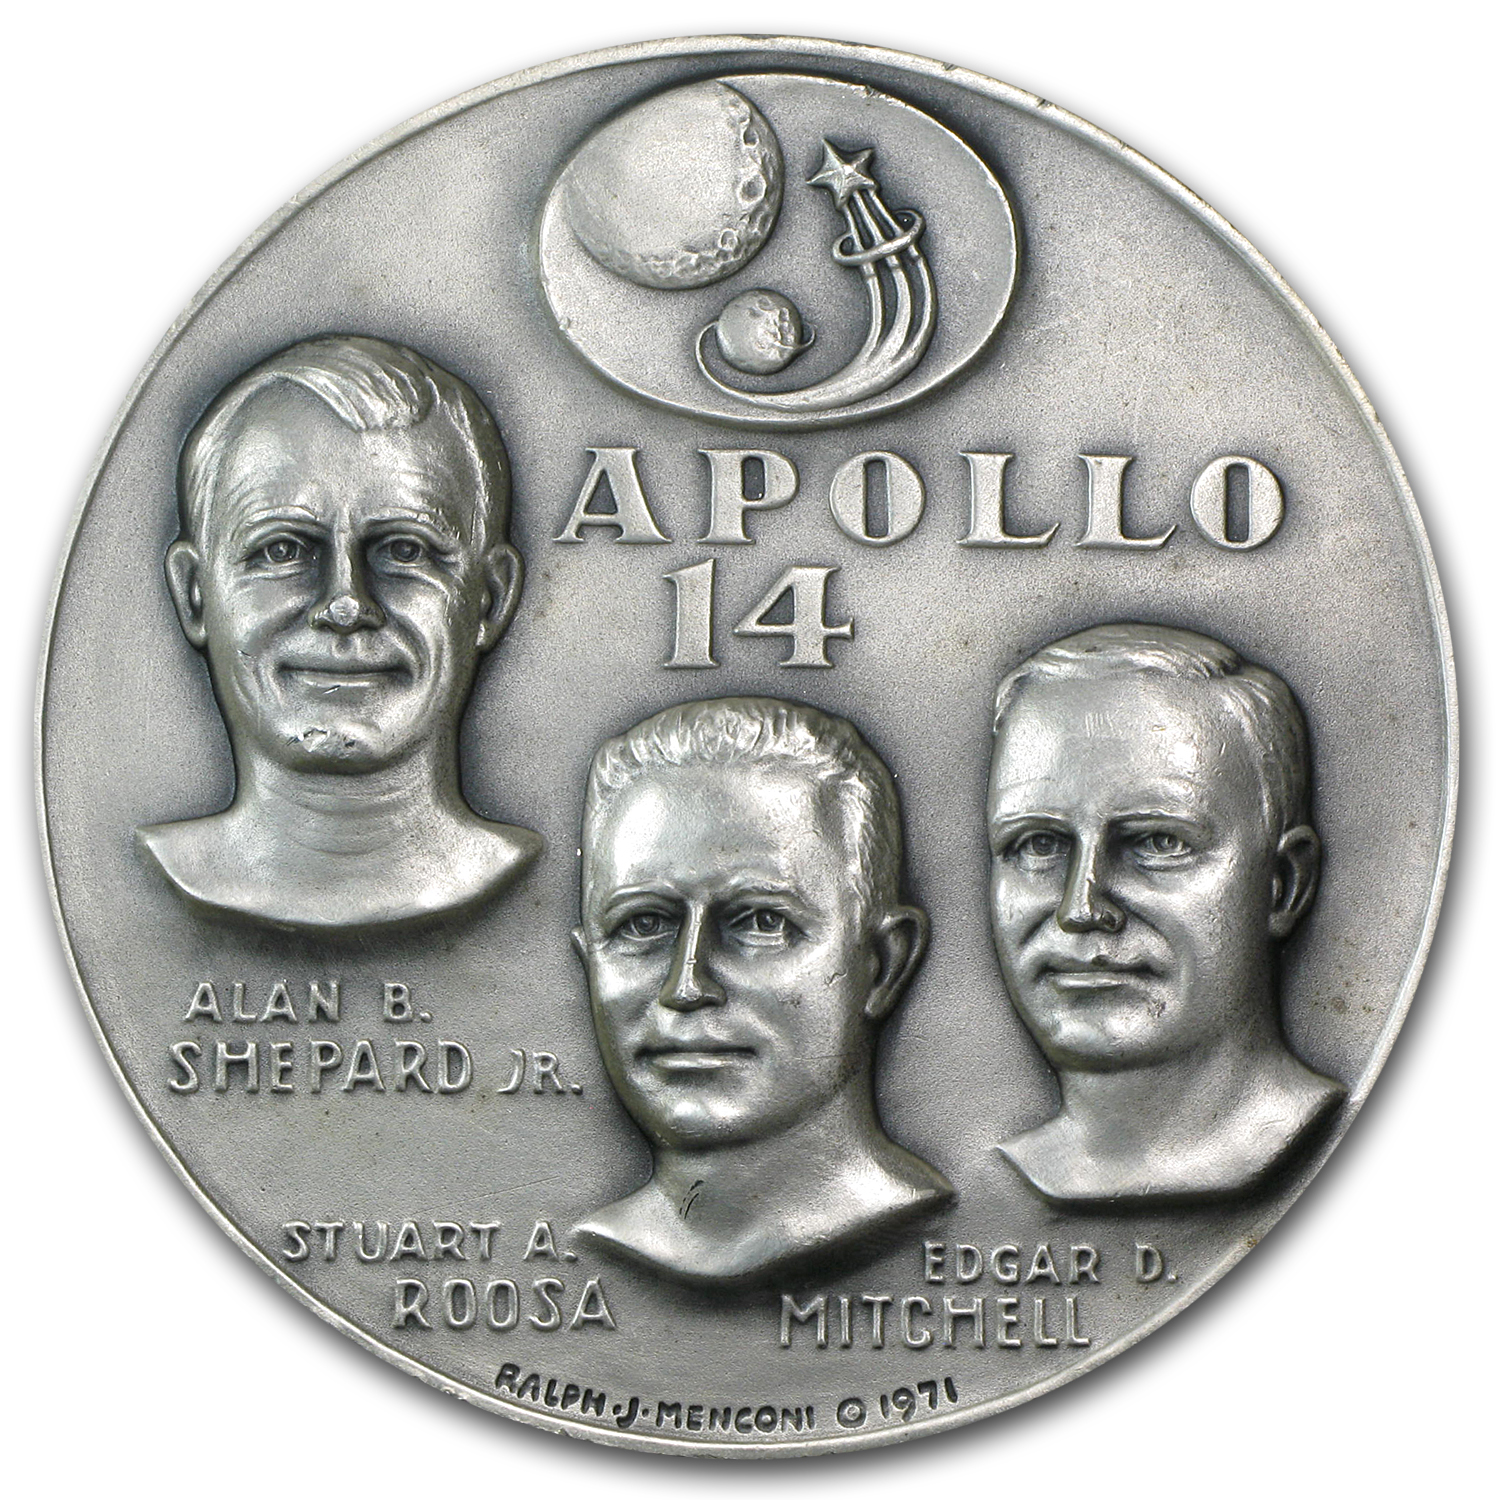 4.69 oz Silver Round - APOLLO 14